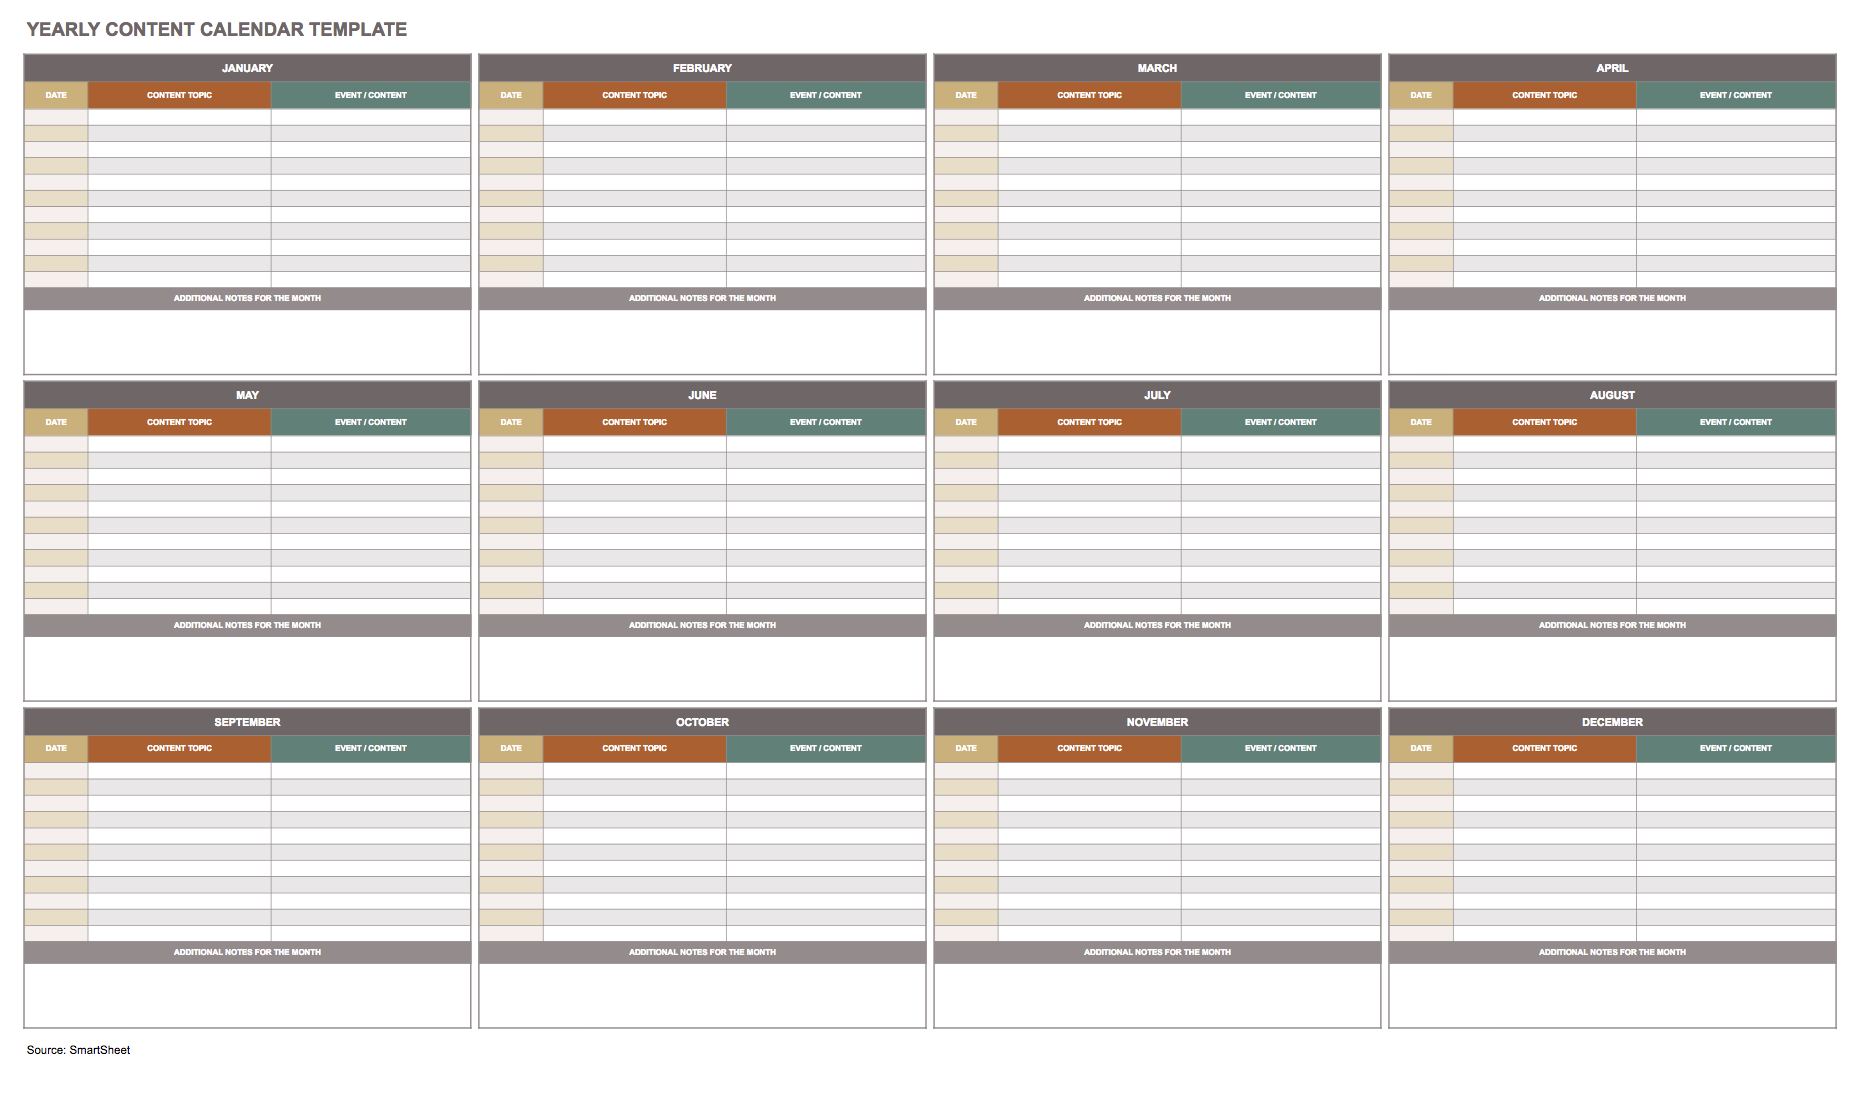 Yearly content marketing calendar template